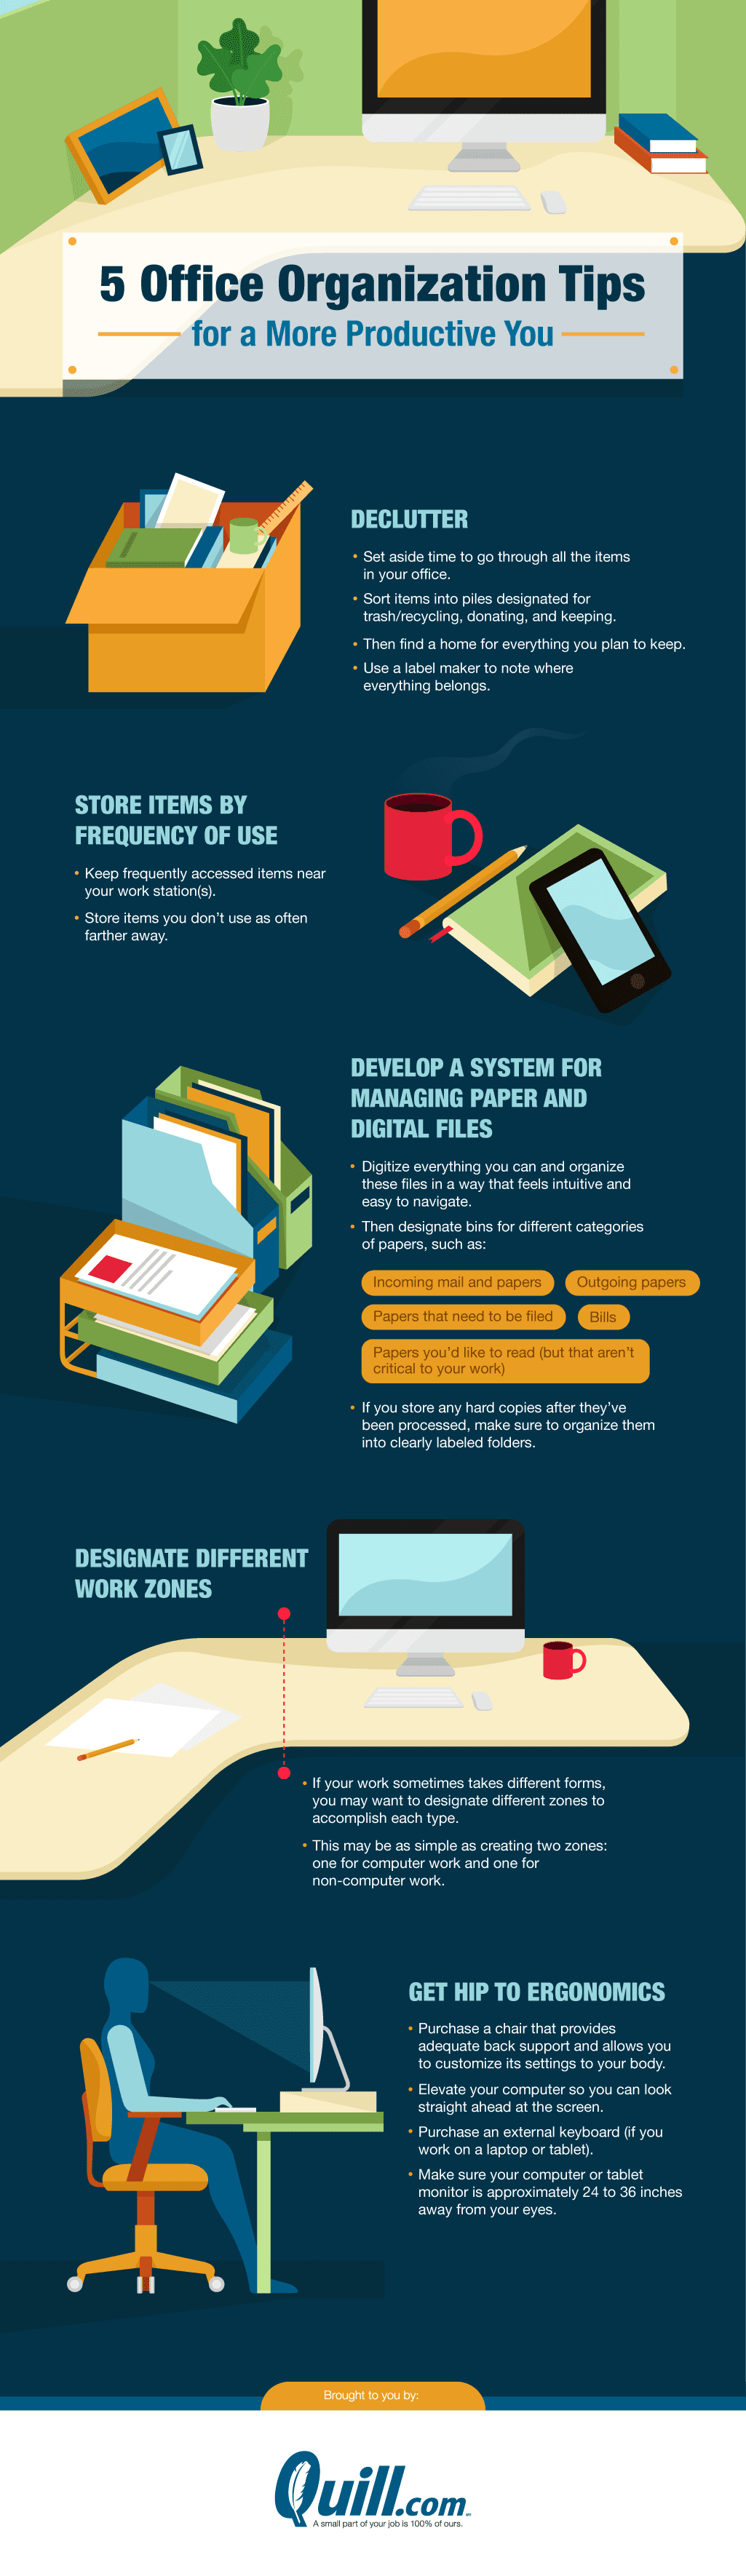 Office organization ideas for greater productivity #infographic